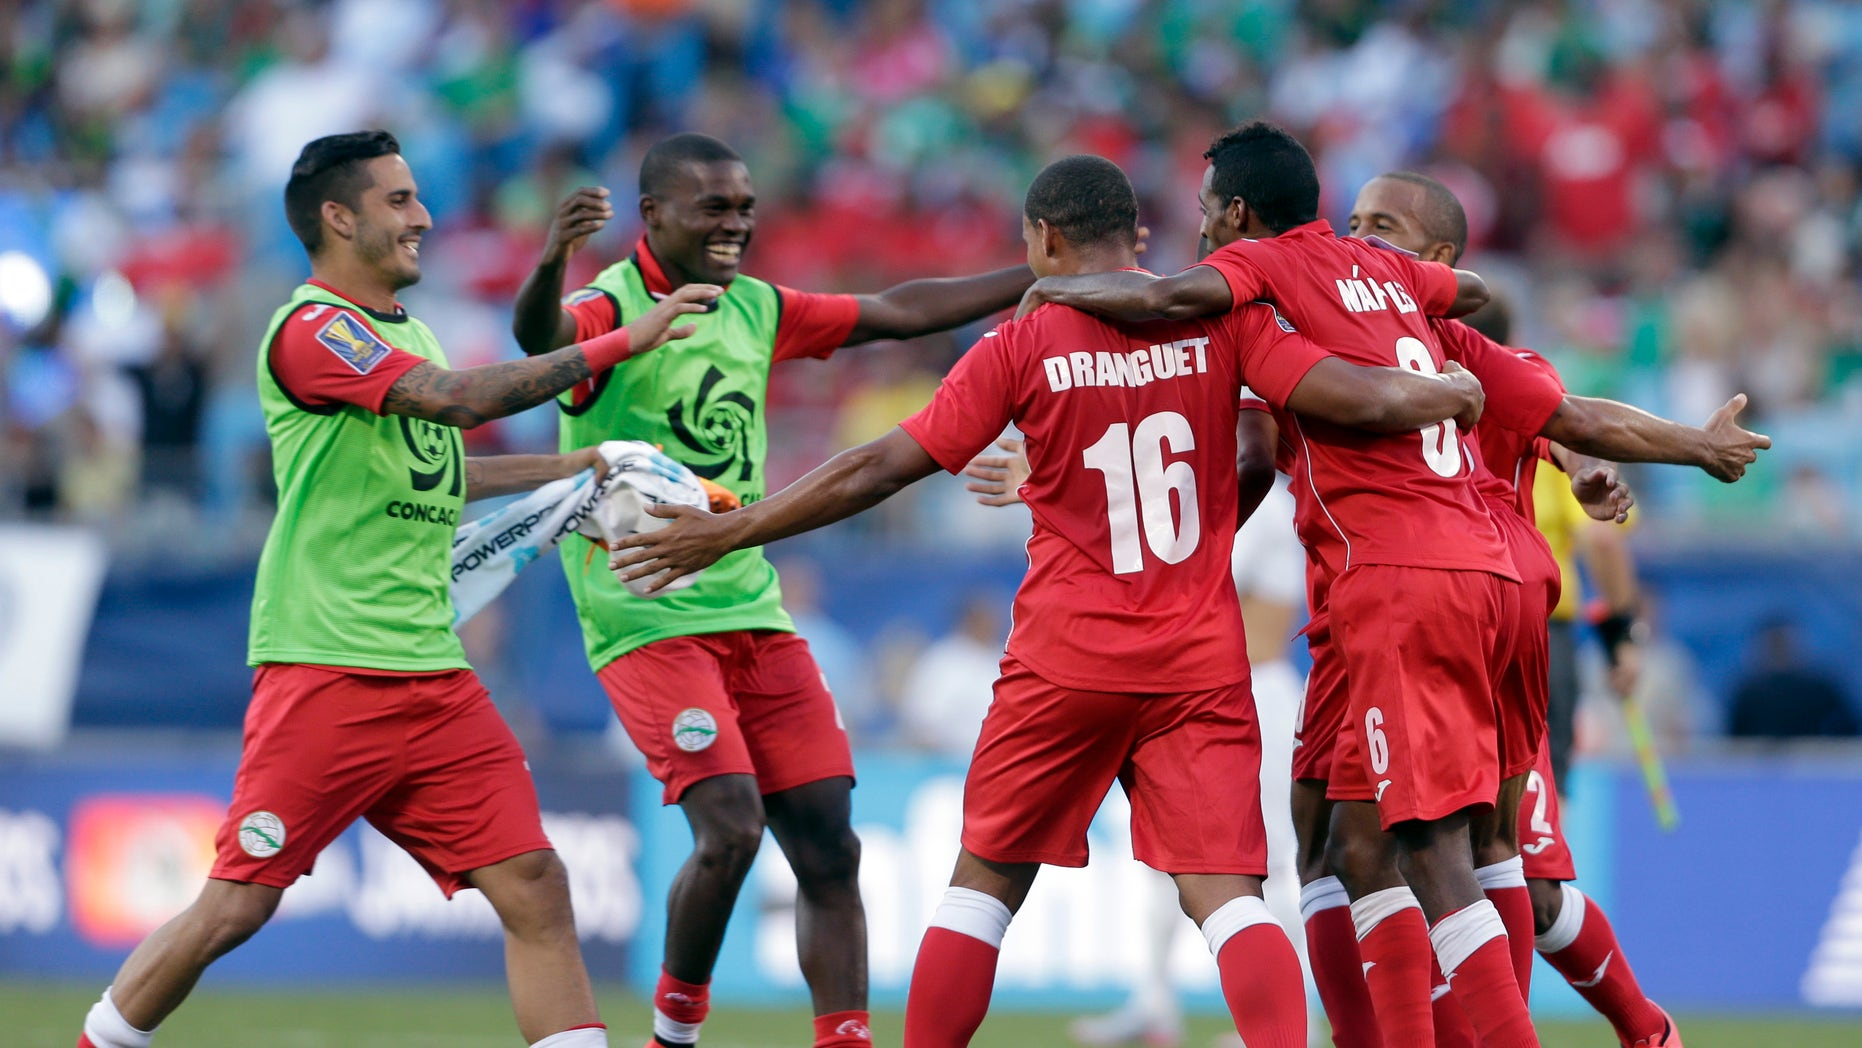 Cuba players celebrate after a CONCACAF Gold Cup soccer match against Guatemala in Charlotte, N.C., July 15, 2015.